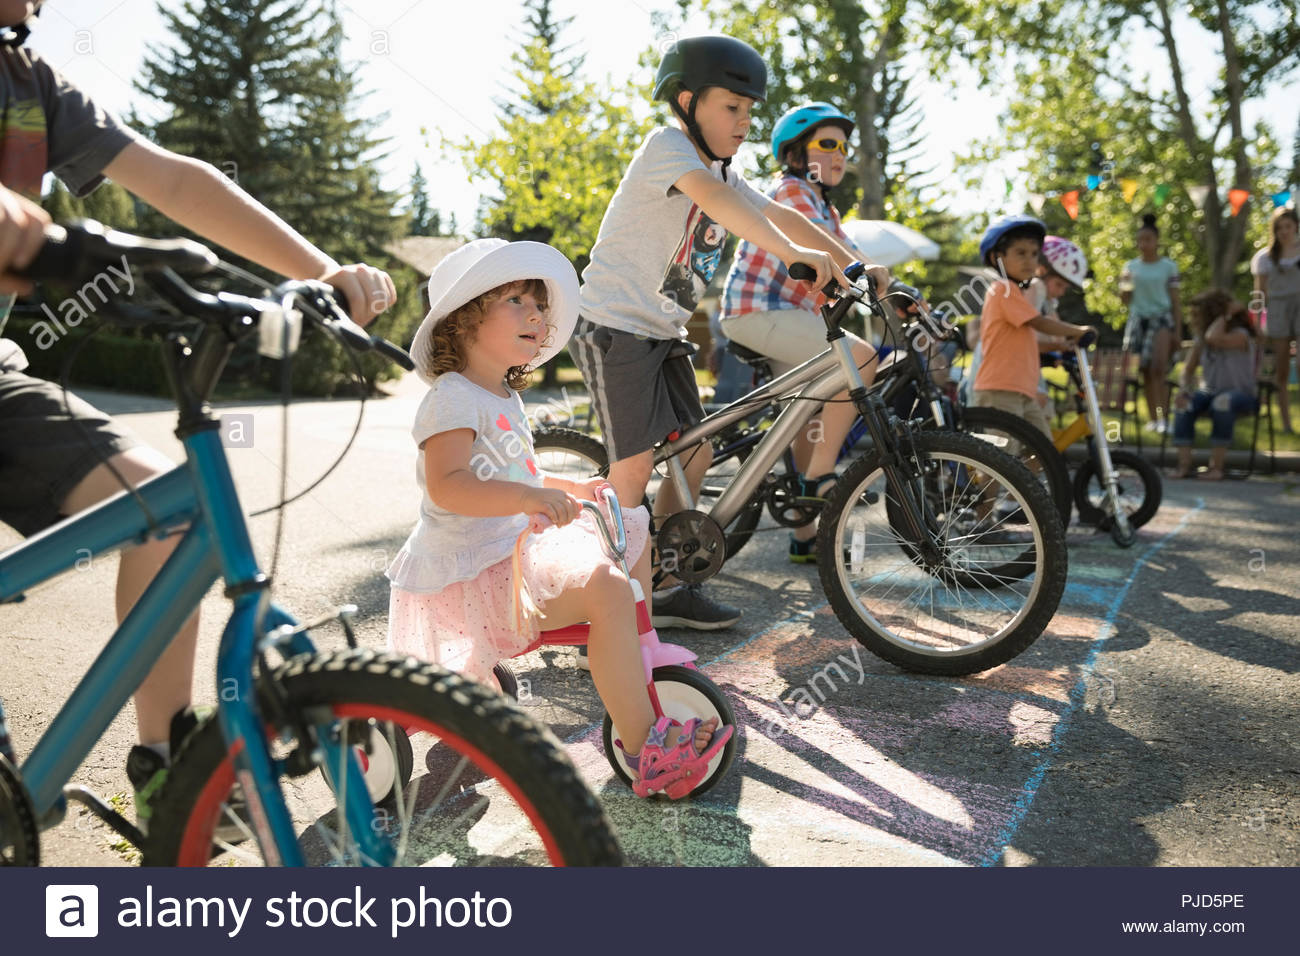 Kids on bicycles ready for race at starting line at summer neighborhood block party - Stock Image